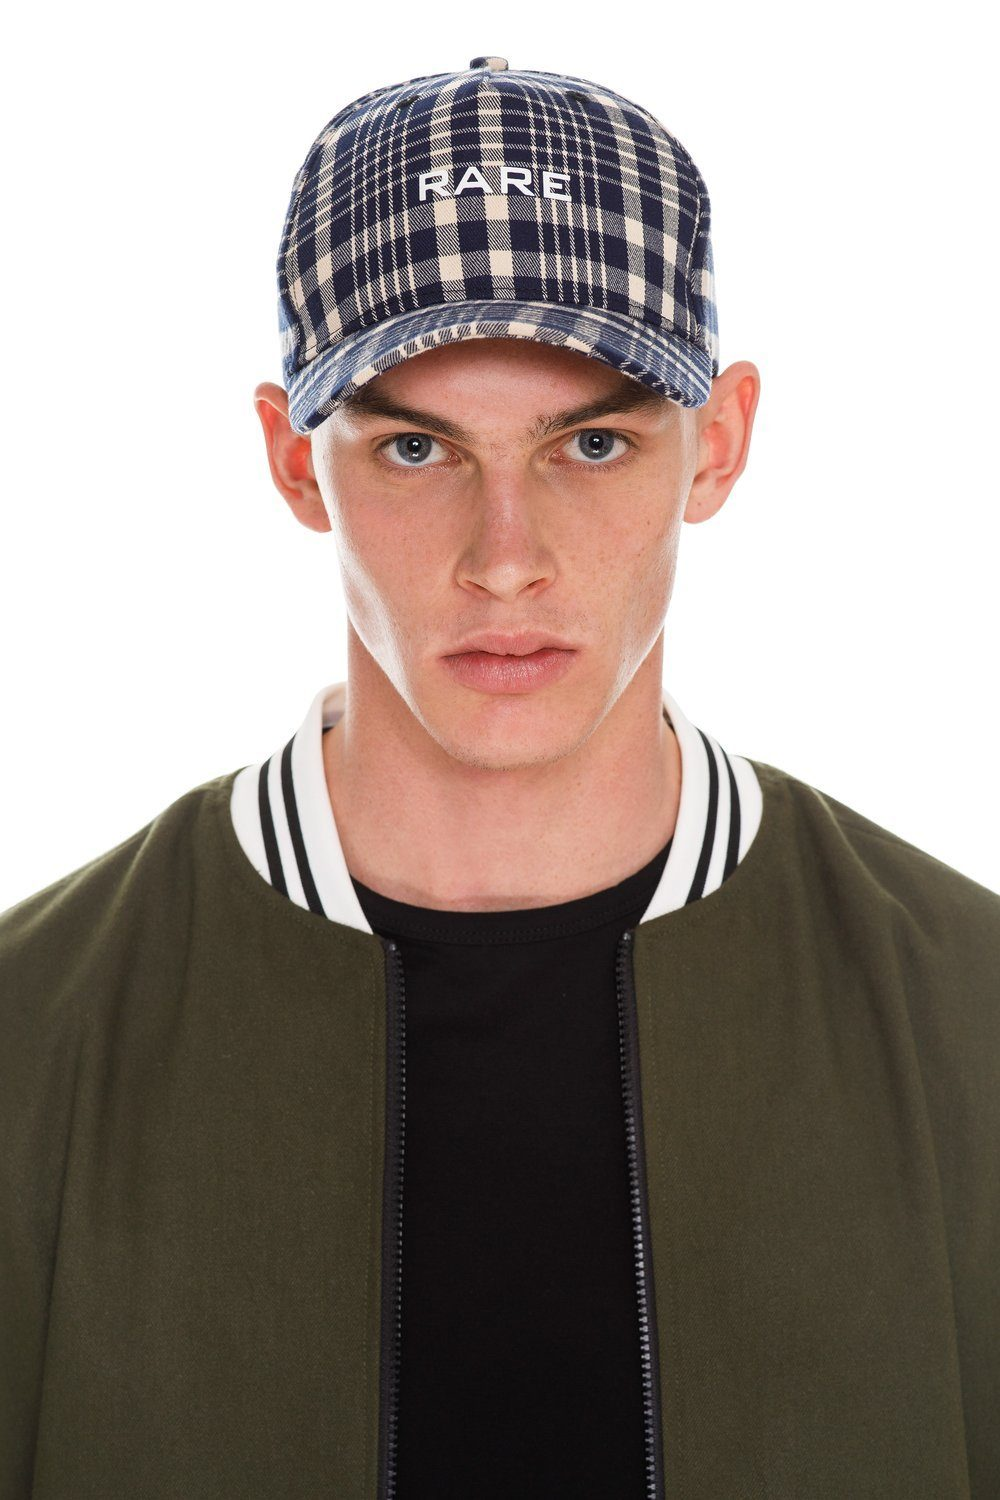 PLAID RARE CAP / NAVY BEIGE RAREFIELD Imperial Clothing